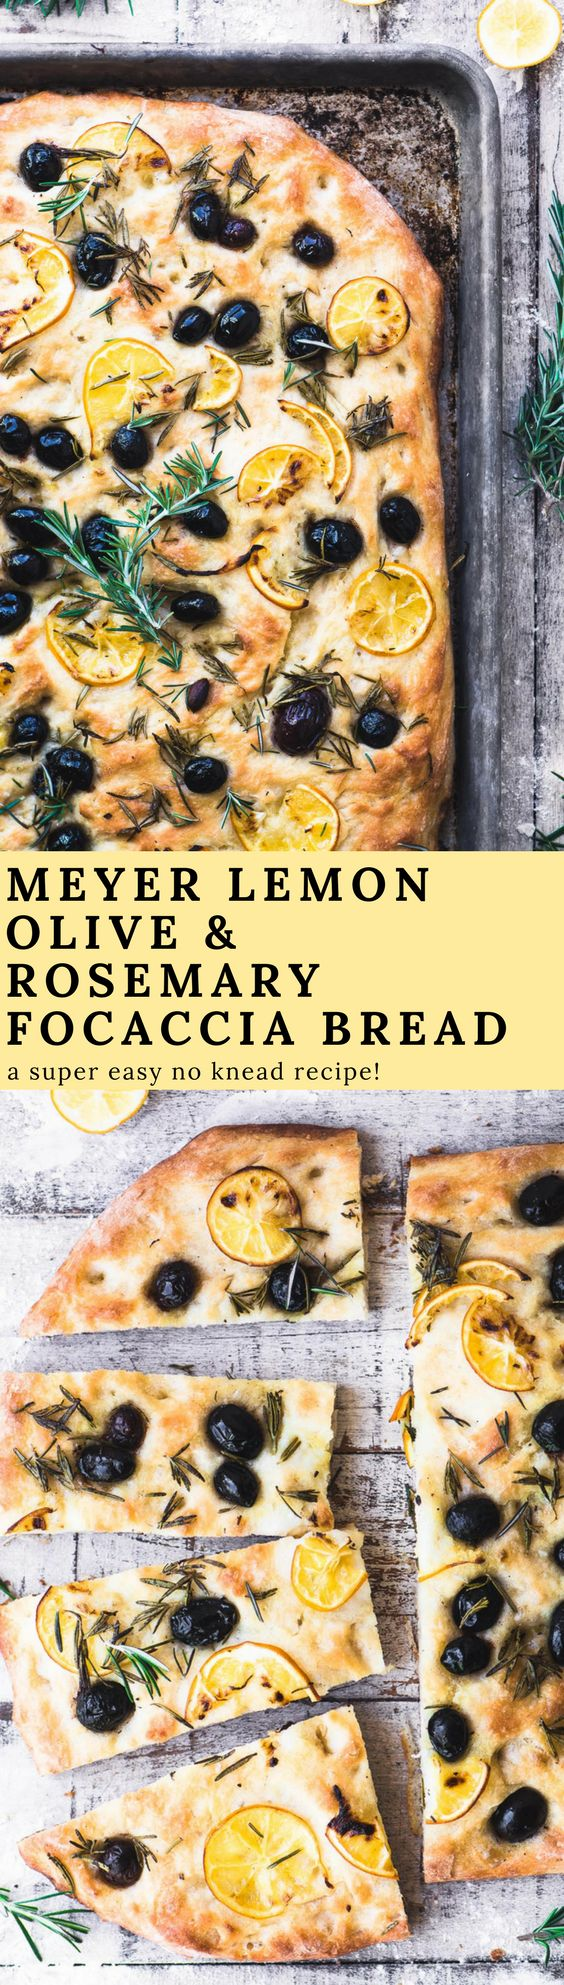 Rosemary and Olive No Knead Focaccia Bread with paper thin slices of Meyer lemon